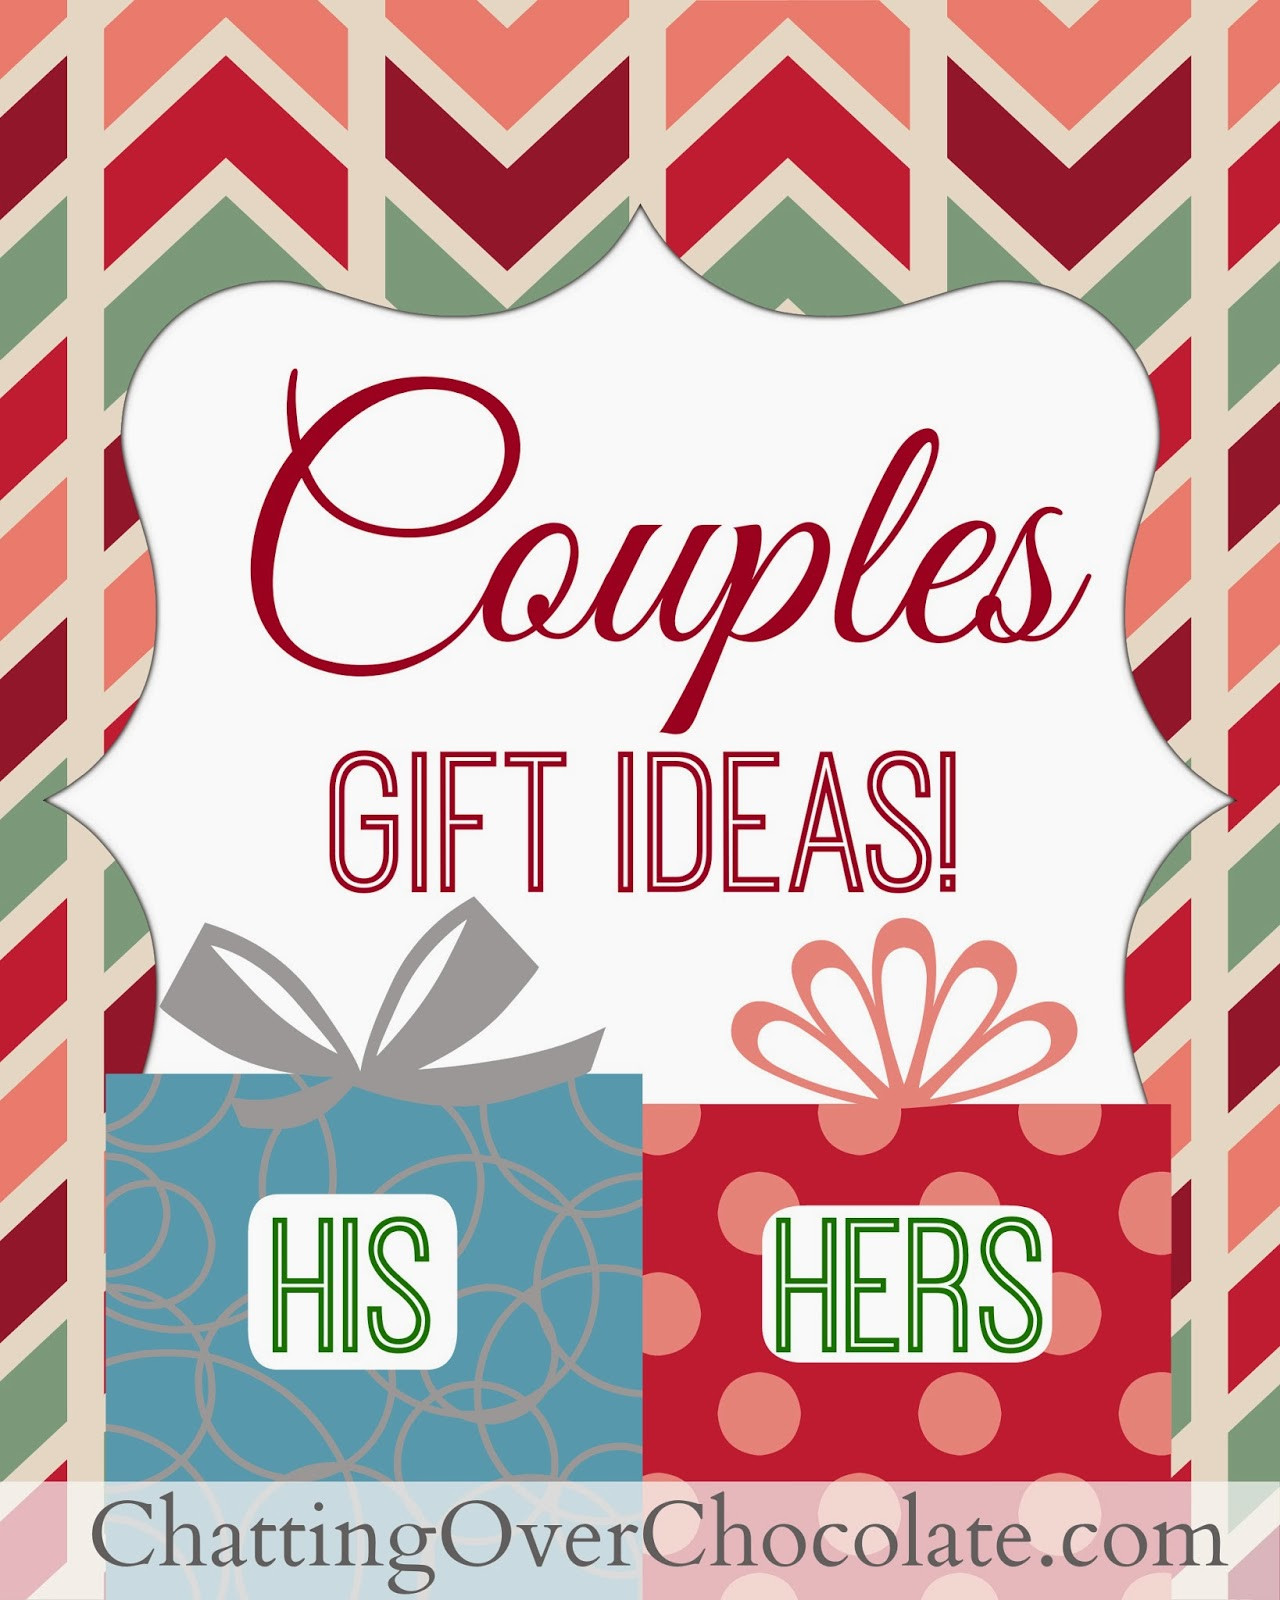 Couple Gift Ideas  Chatting Over Chocolate His & Hers Gift Ideas Couples